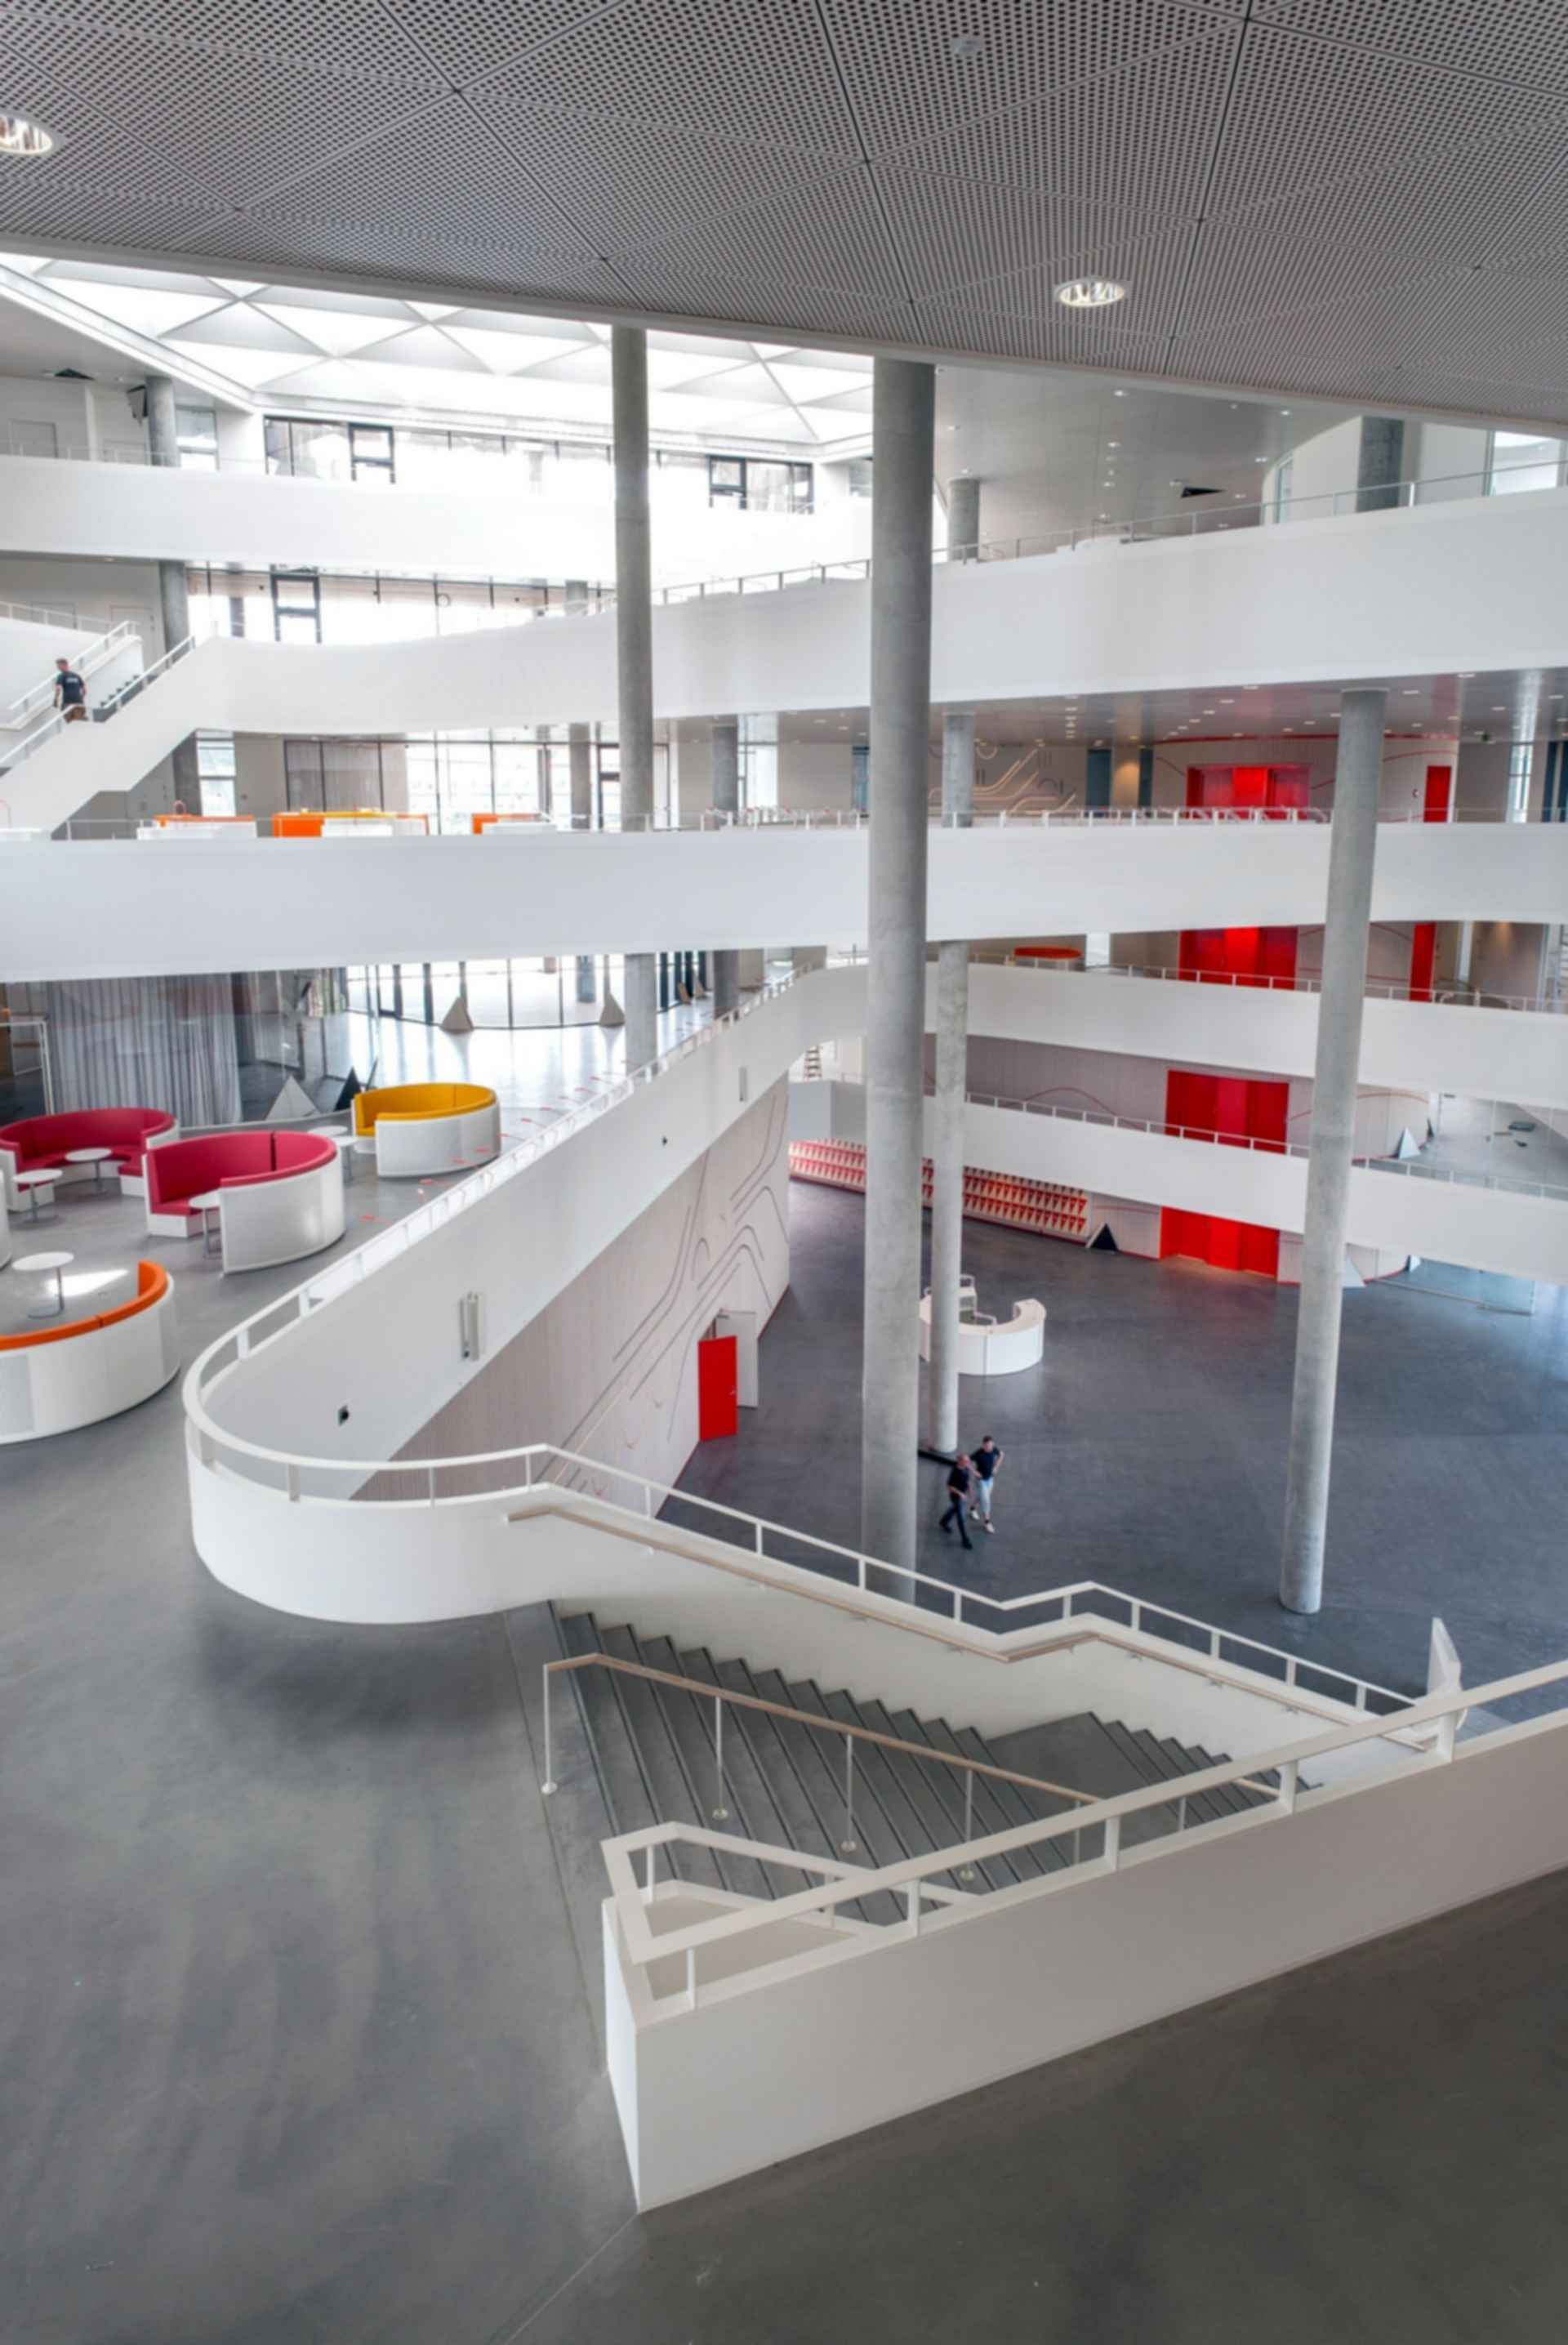 Kolding Campus, University of Southern Denmark - Interior